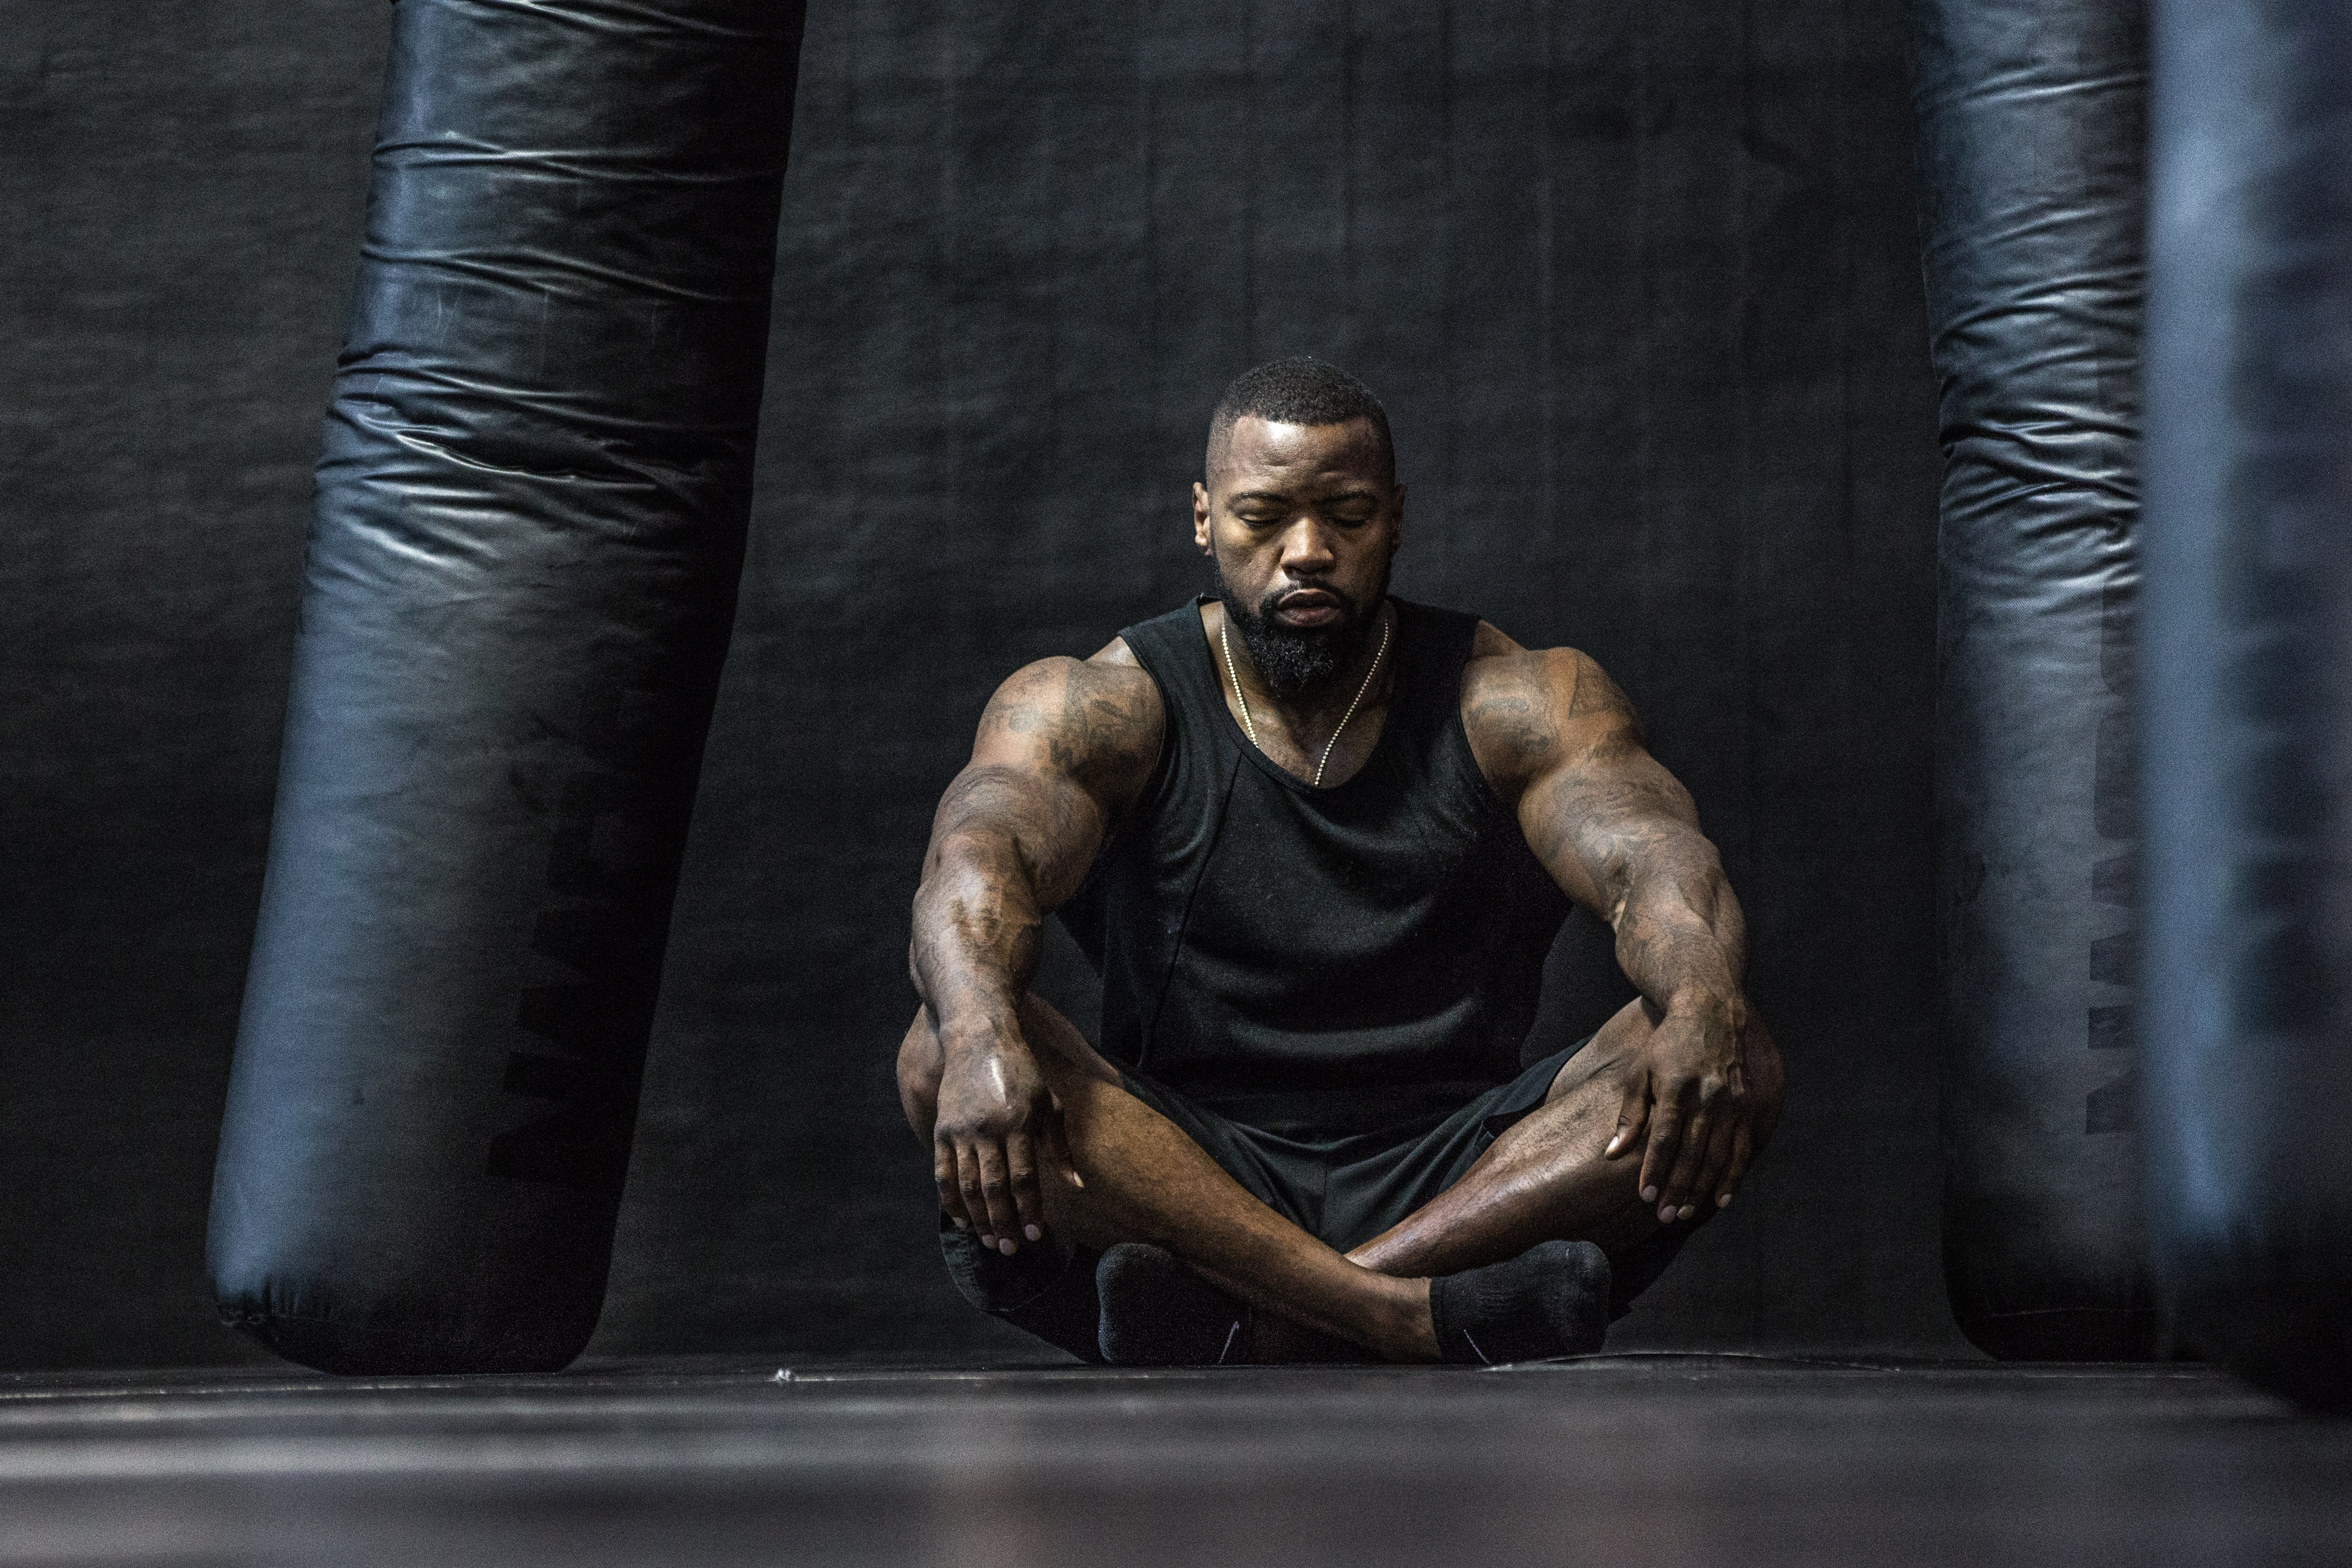 Boxer Power Bodybuilding Mike Rashid relaxed wellbeing meditate for better health